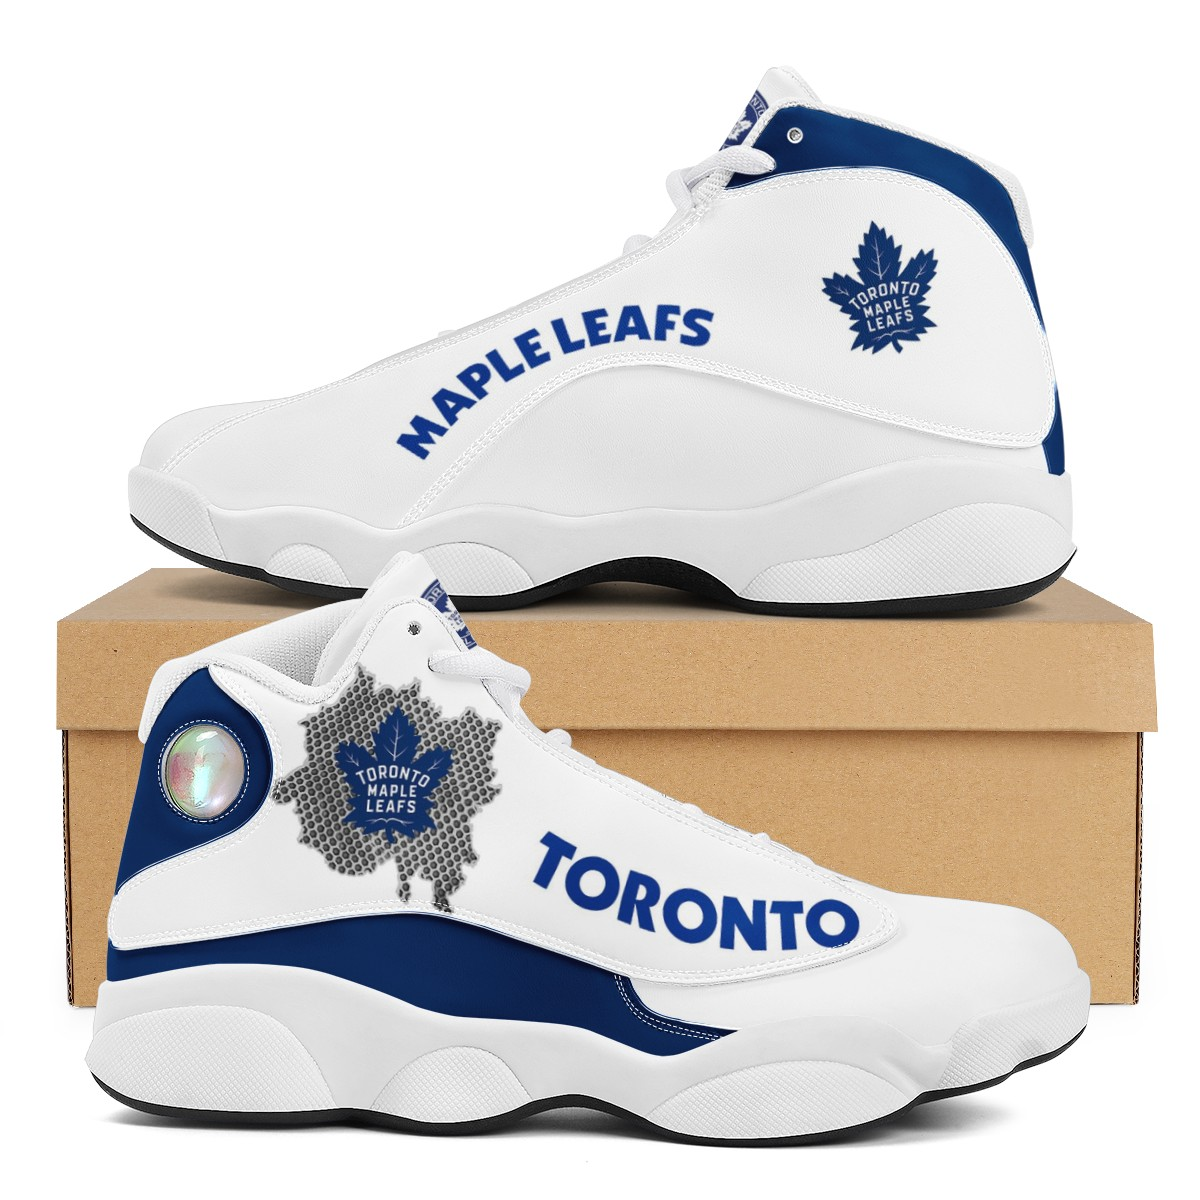 Women's Toronto Maple Leafs Limited Edition JD13 Sneakers 001